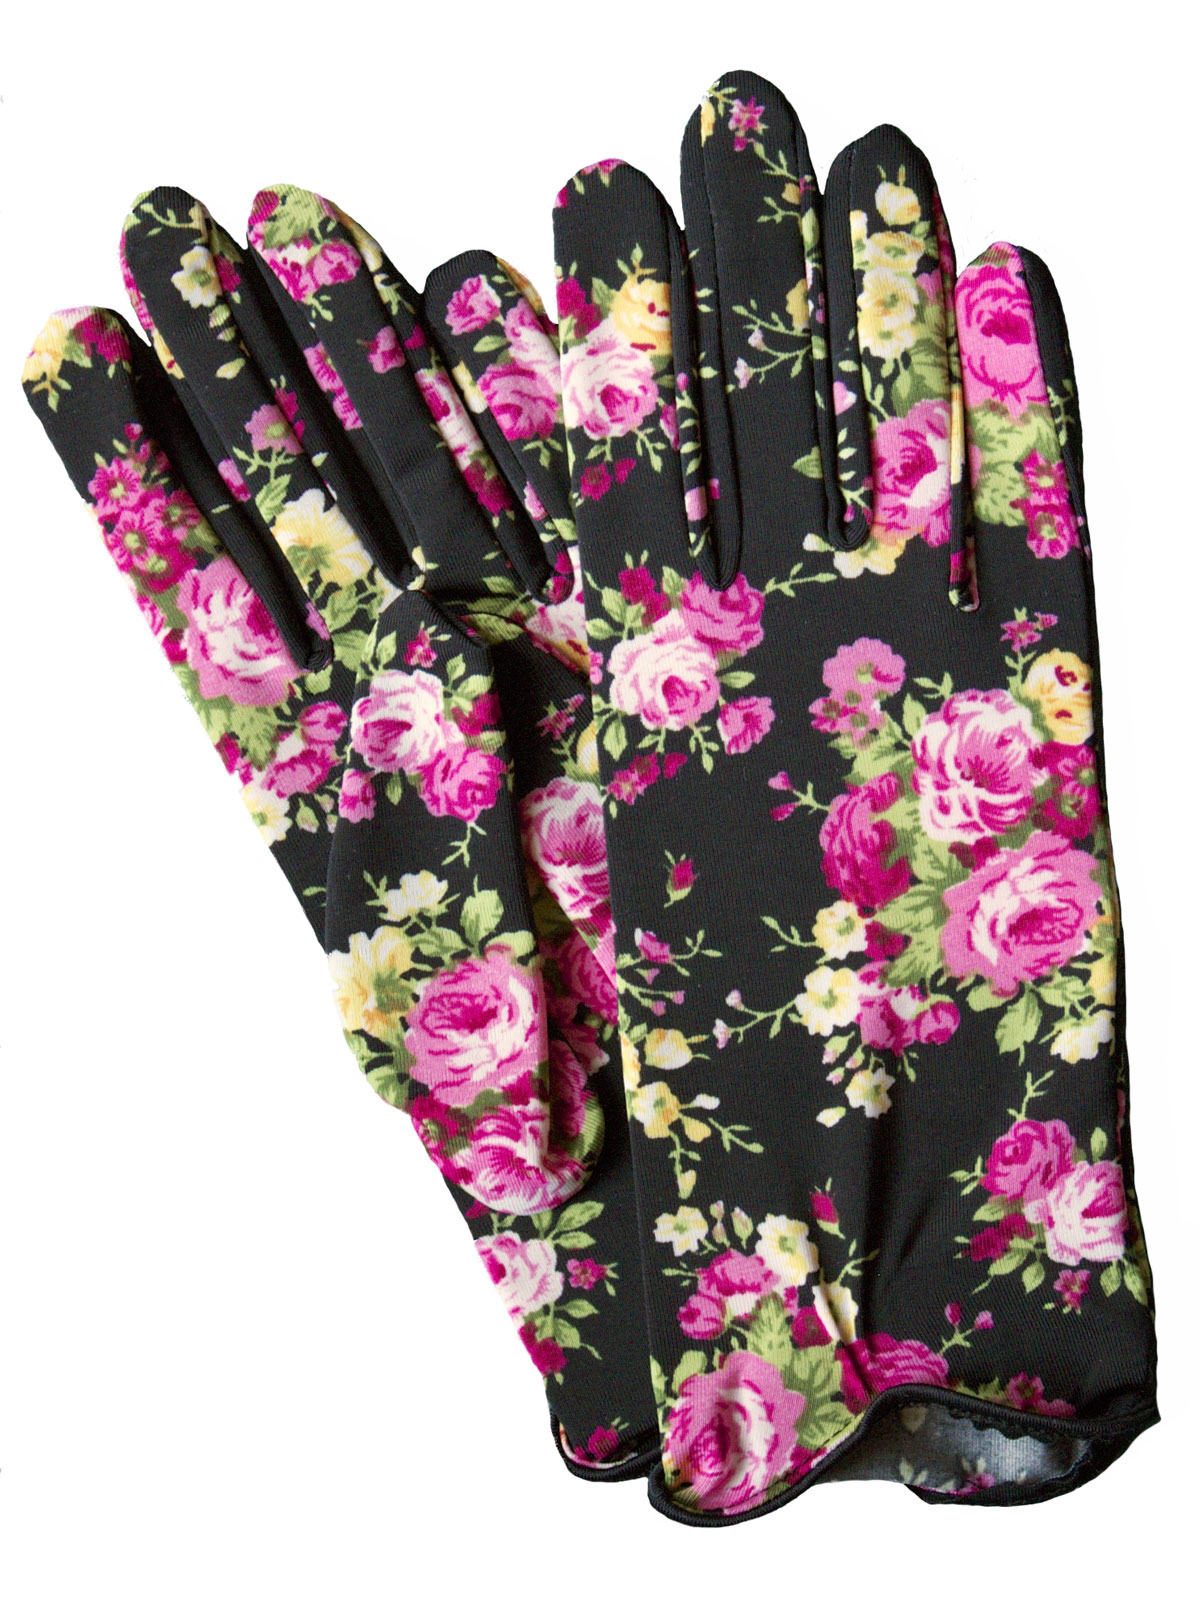 Dents Floral Print Short Dress Gloves Womens Tout Ensemble